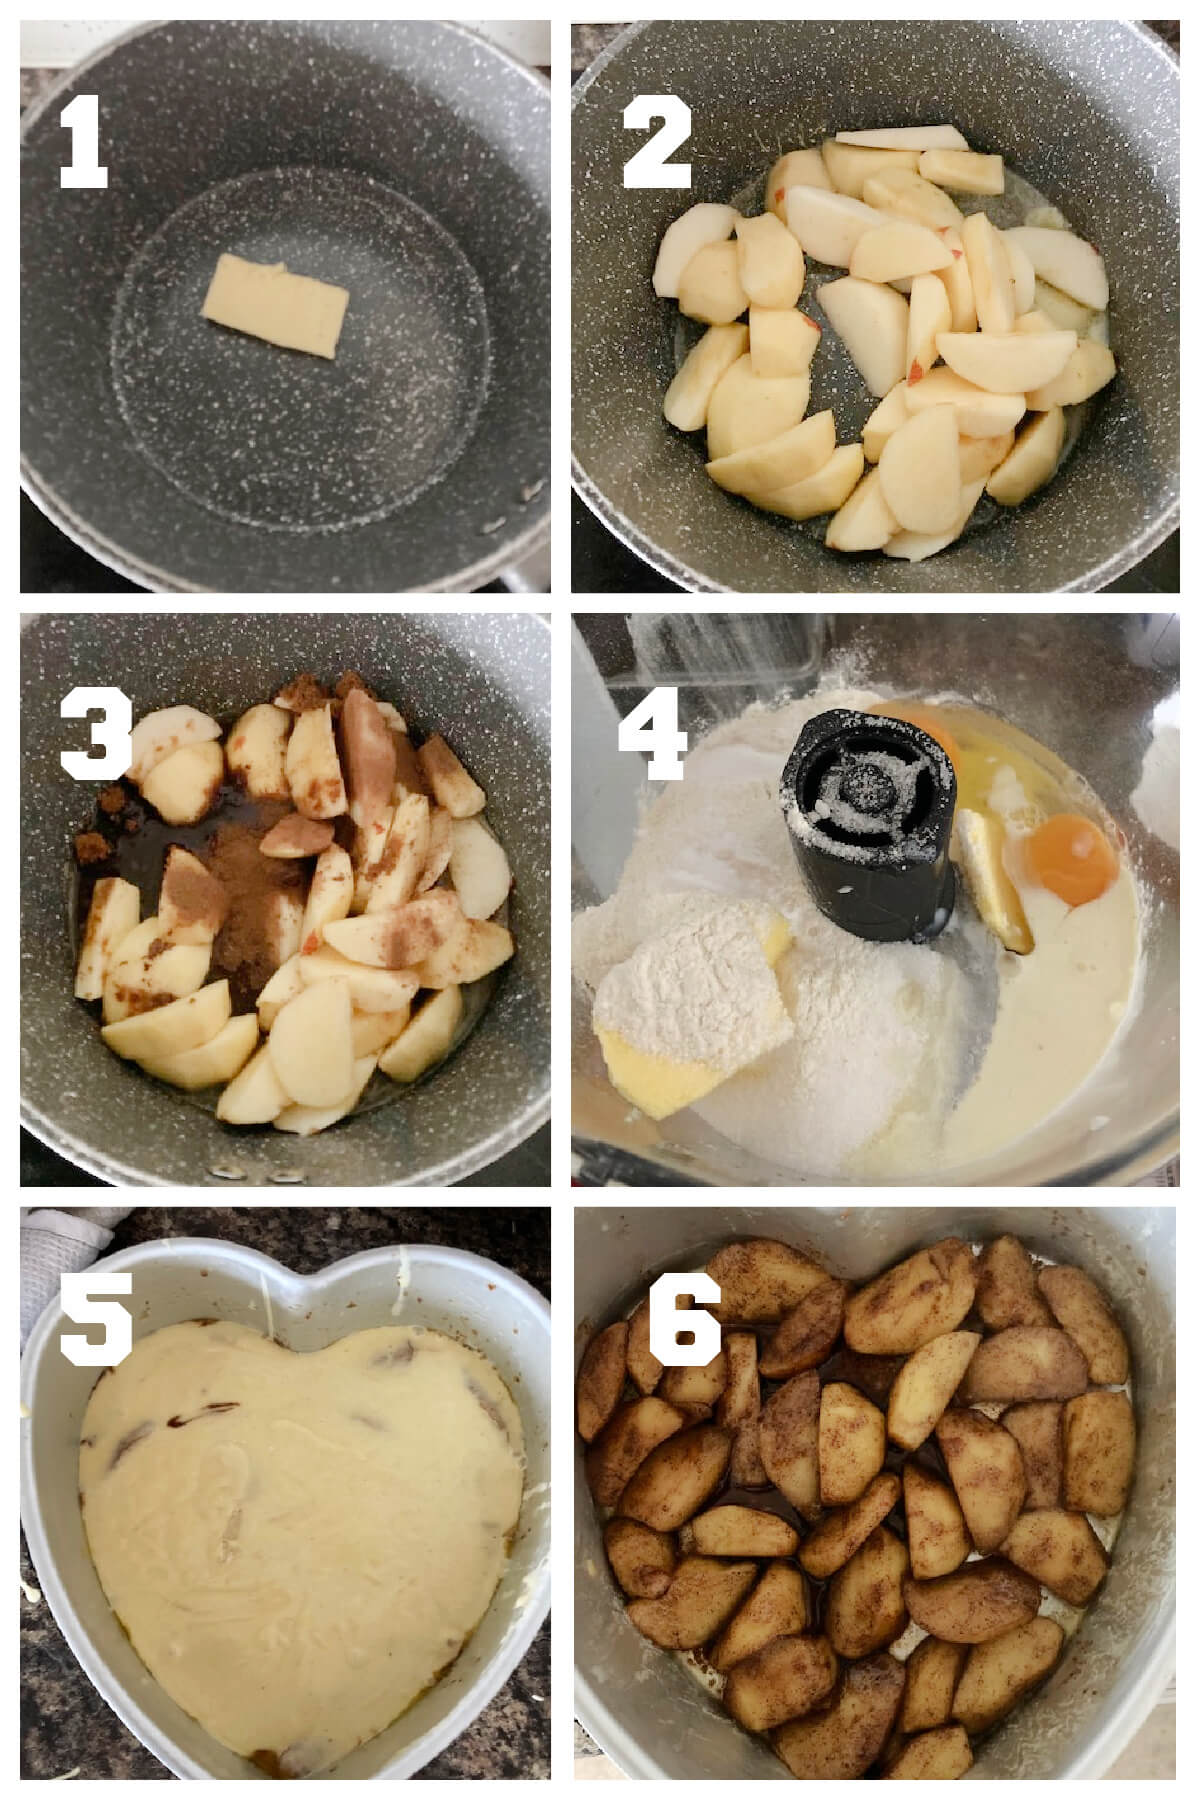 Collage of 6 photos to show how to make apple upside down cake